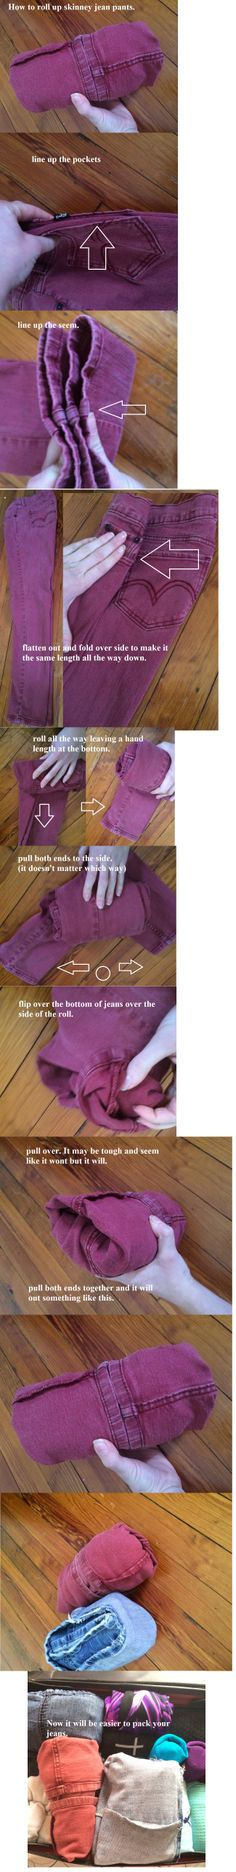 How to fold skinny jeans for easy packing.